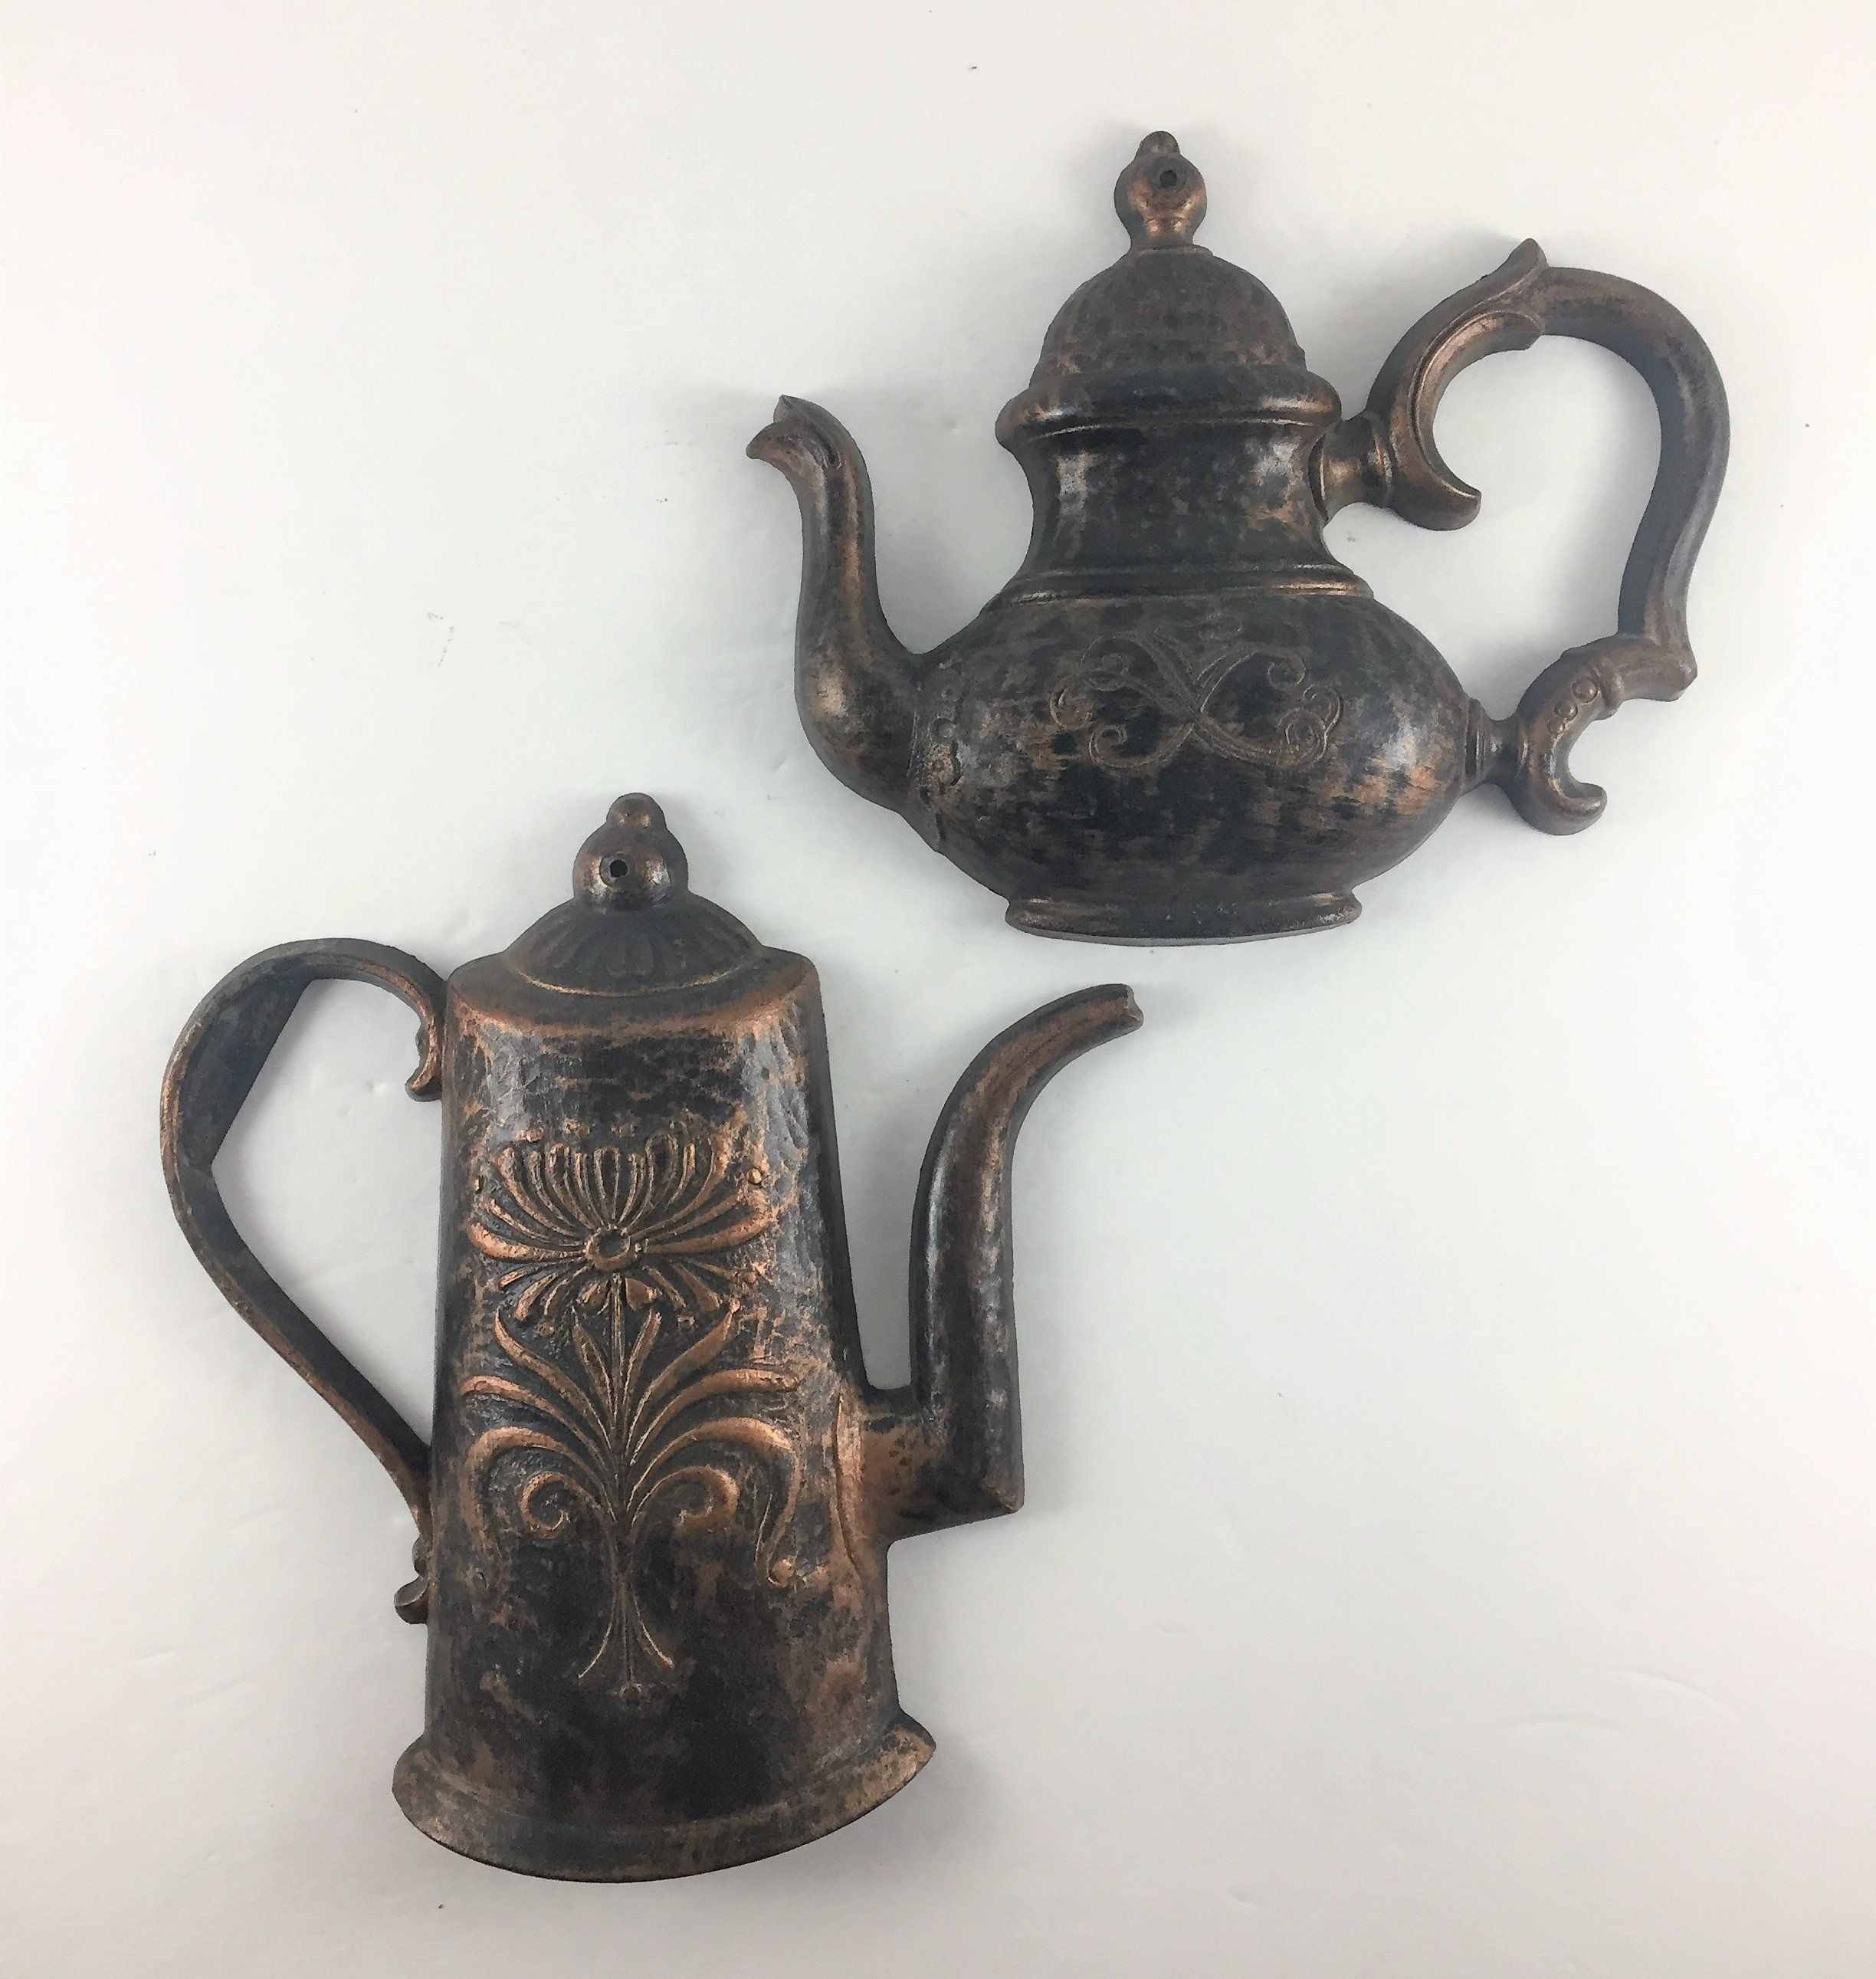 Vintage Kitchen Wall Decor Syroco Teapot And Coffee Pot Copper And Black Syroco Pair Wall Hangings Kitch Kitchen Wall Decor Vintage Kitchen Wall Decor Tea Pots